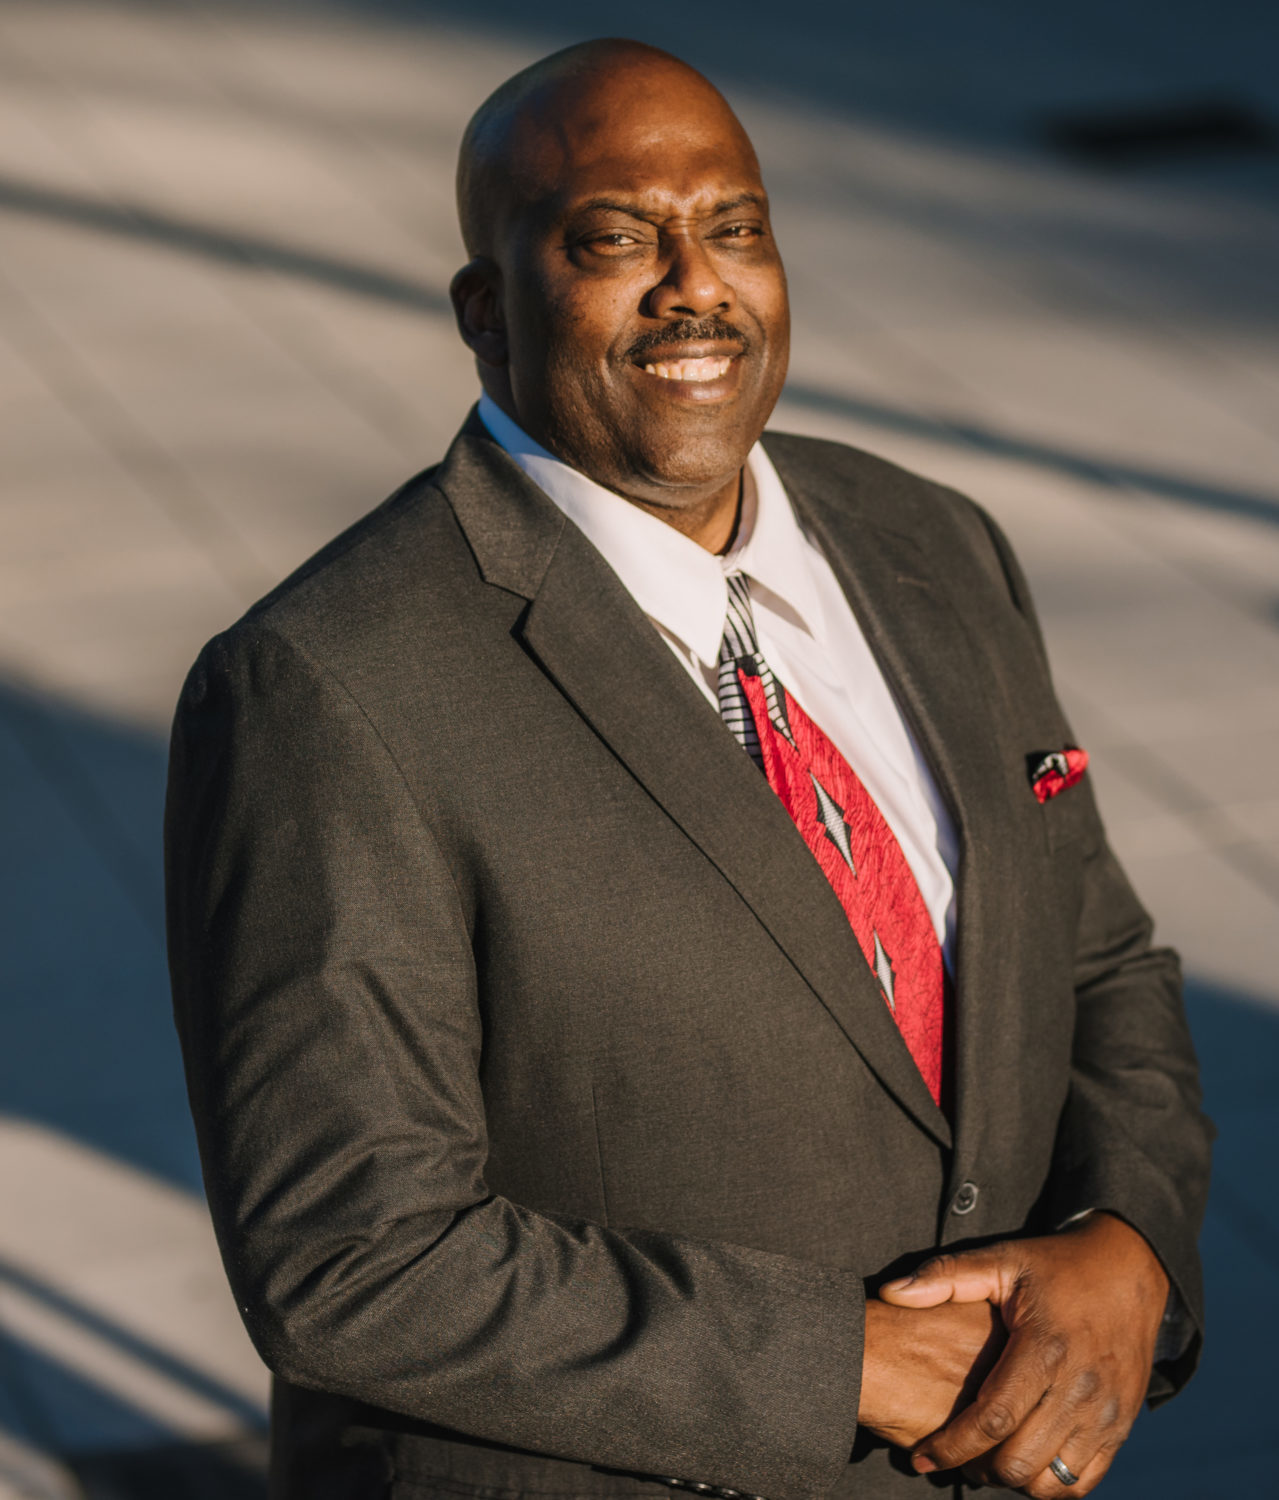 Buncombe County Sheriff-elect Quentin Miller